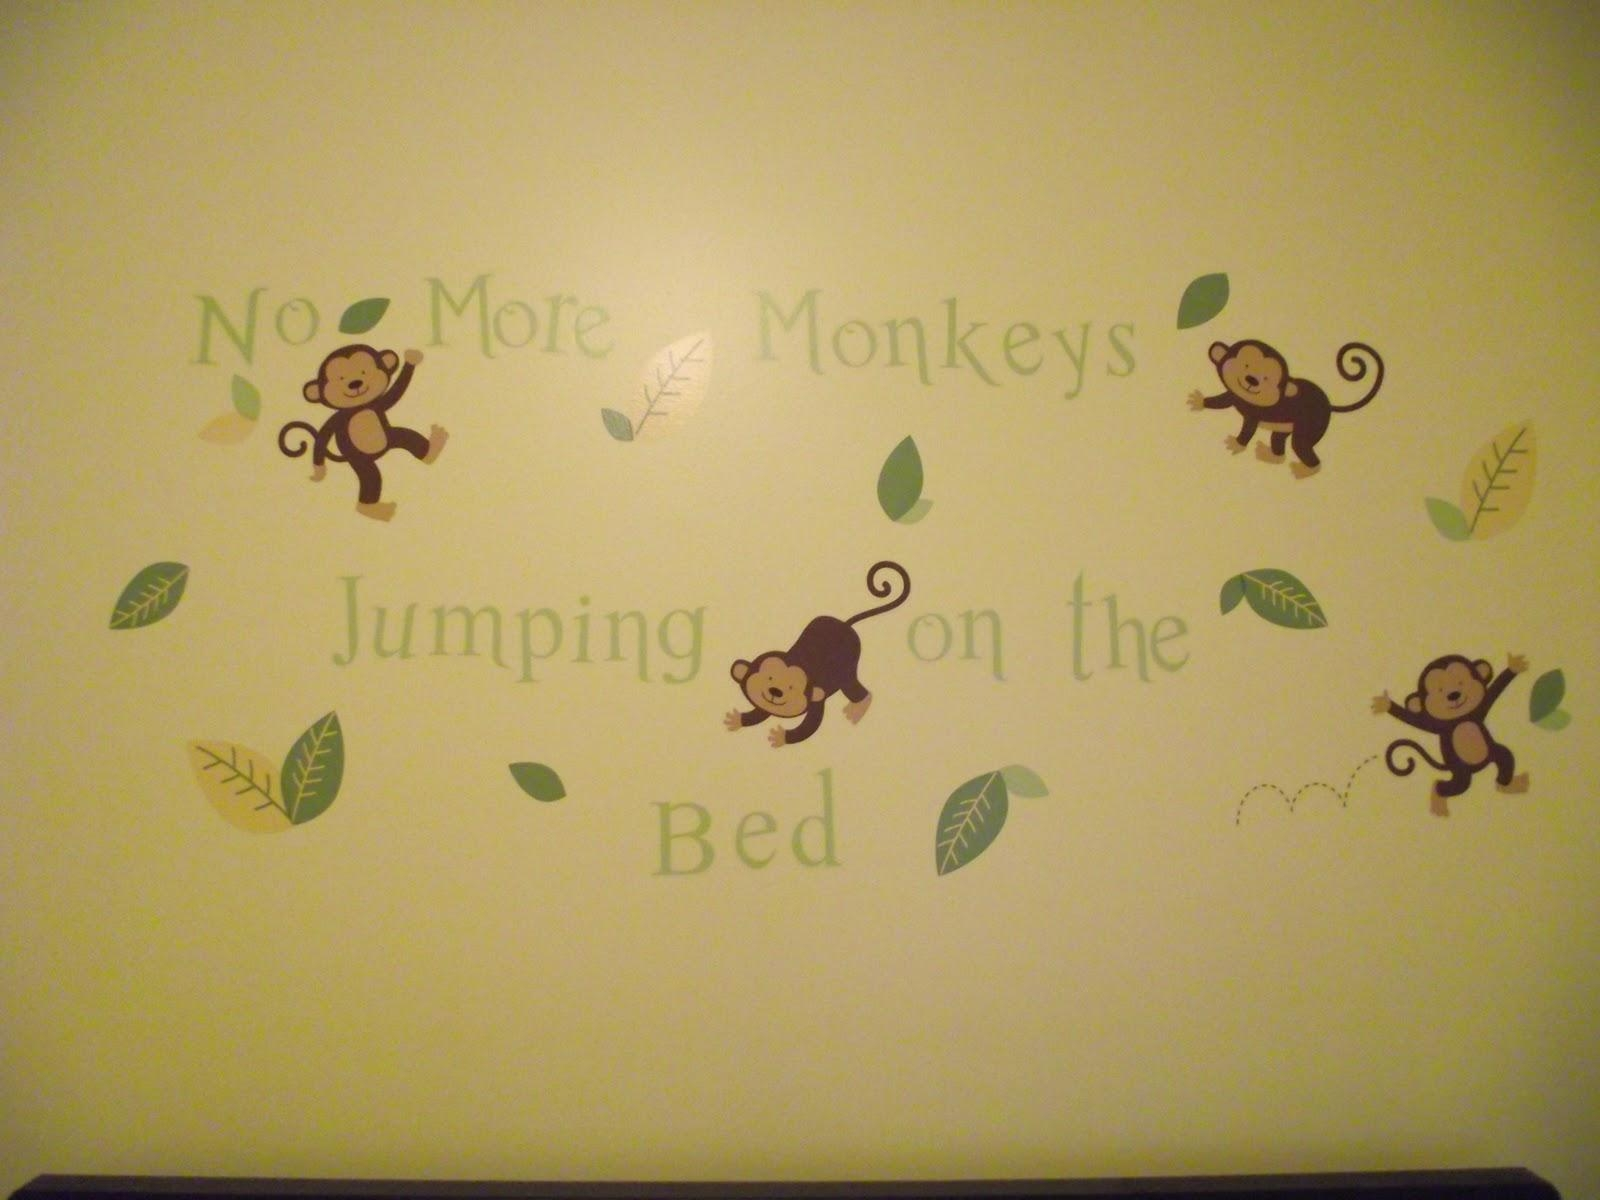 20 Best No More Monkeys Jumping on the Bed Wall Art | Wall Art Ideas